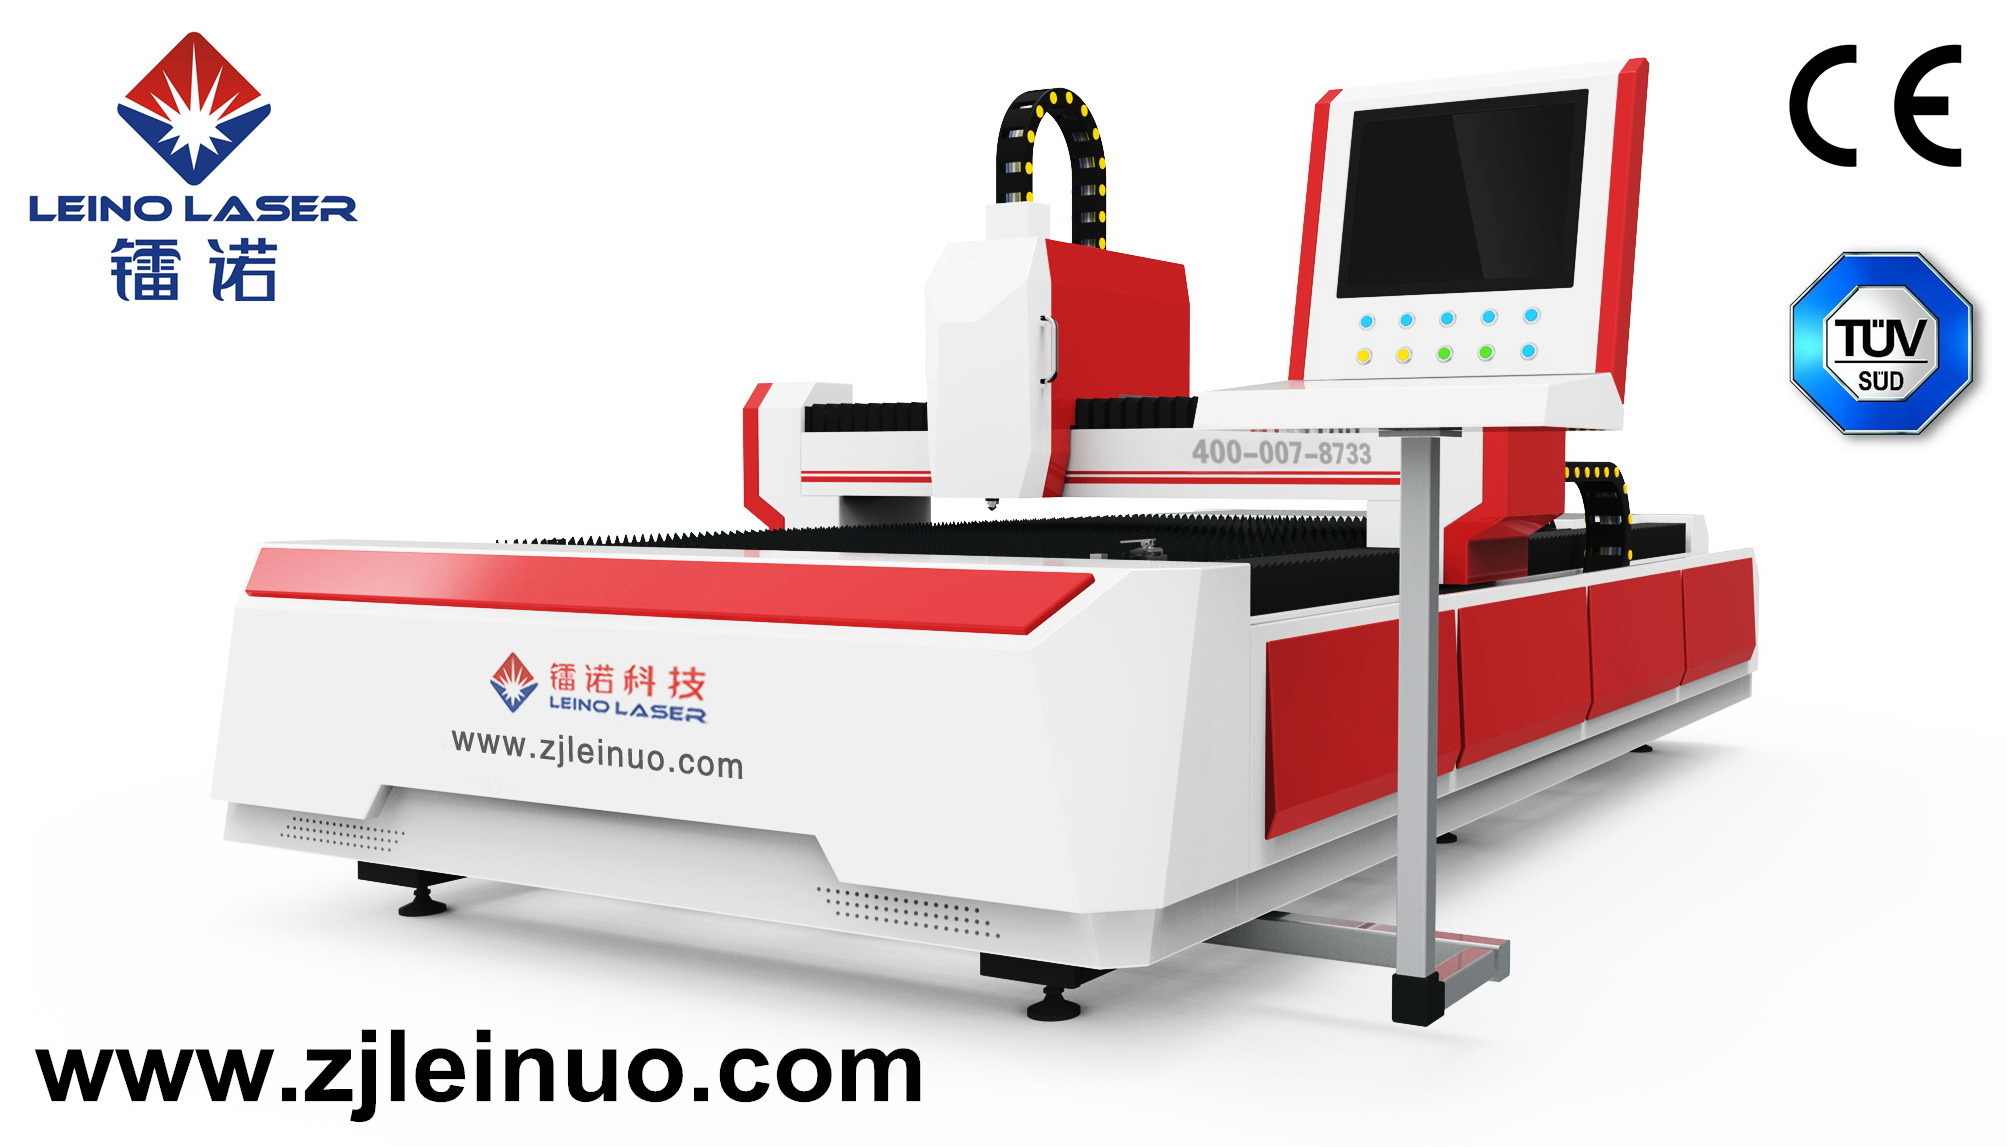 500W CNC Open-Type Fiber Laser Cutting Machine for Metal